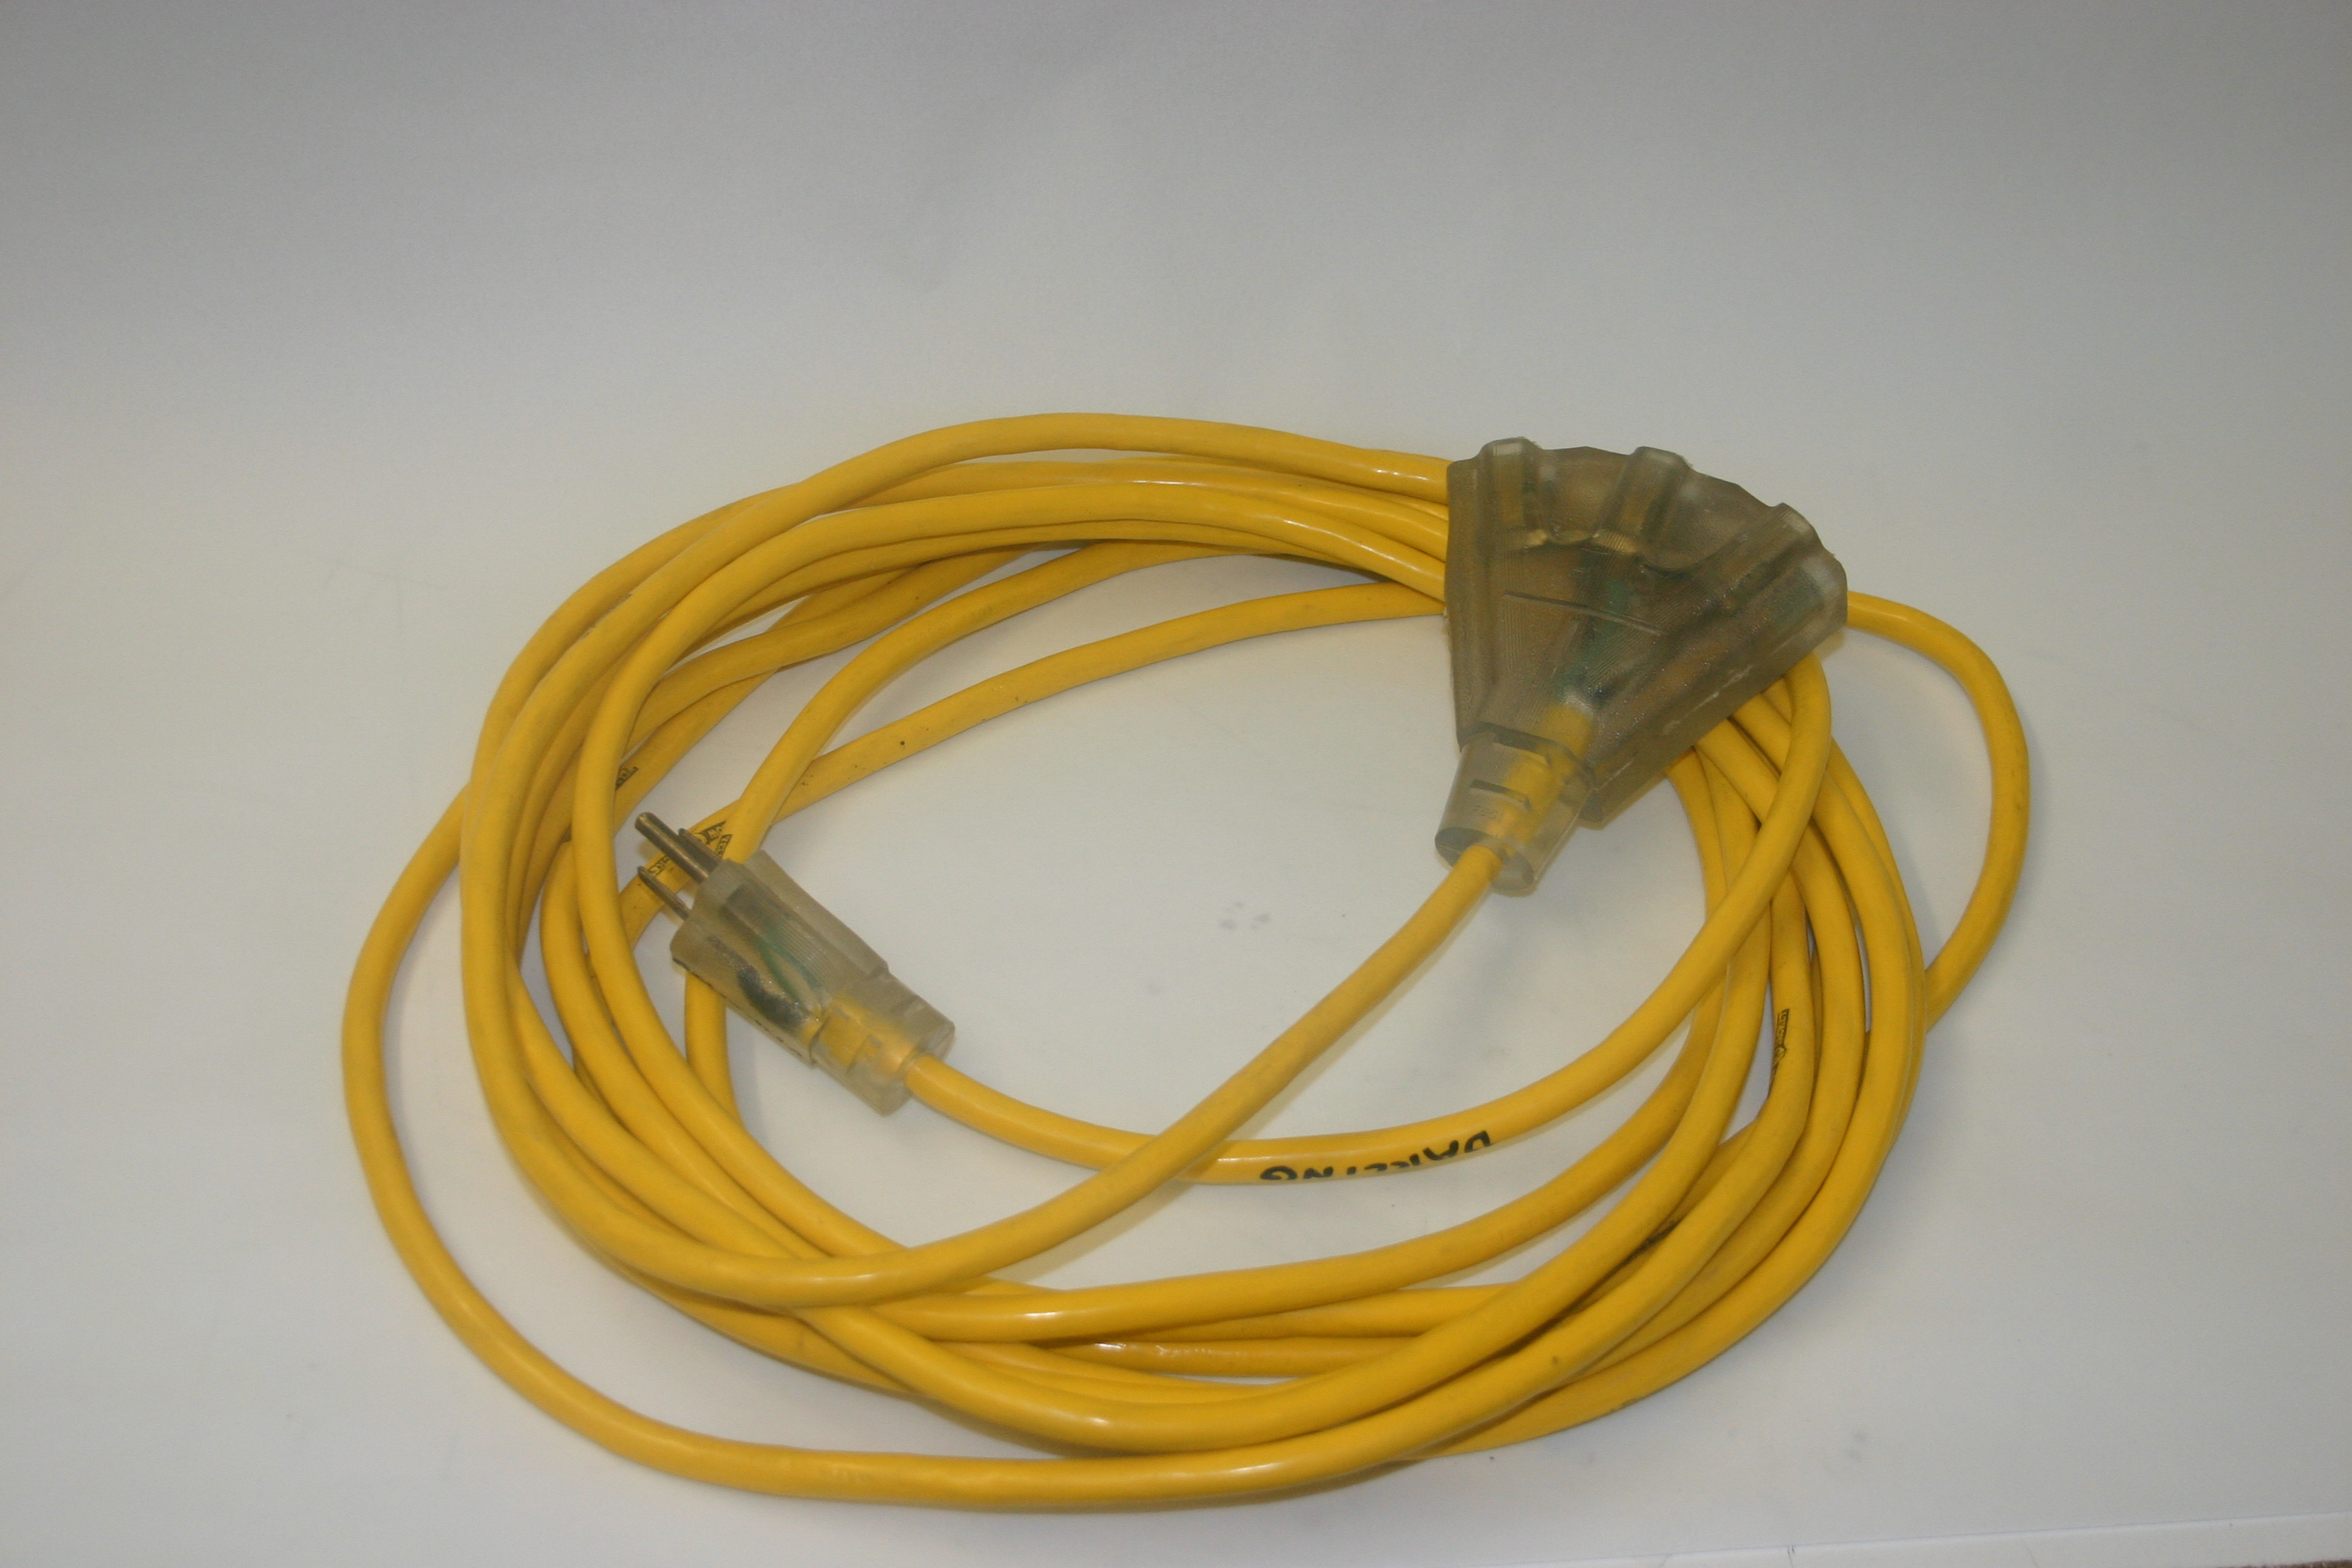 extension cord wikipediaOrange Extension Cord Wiring Diagram #20